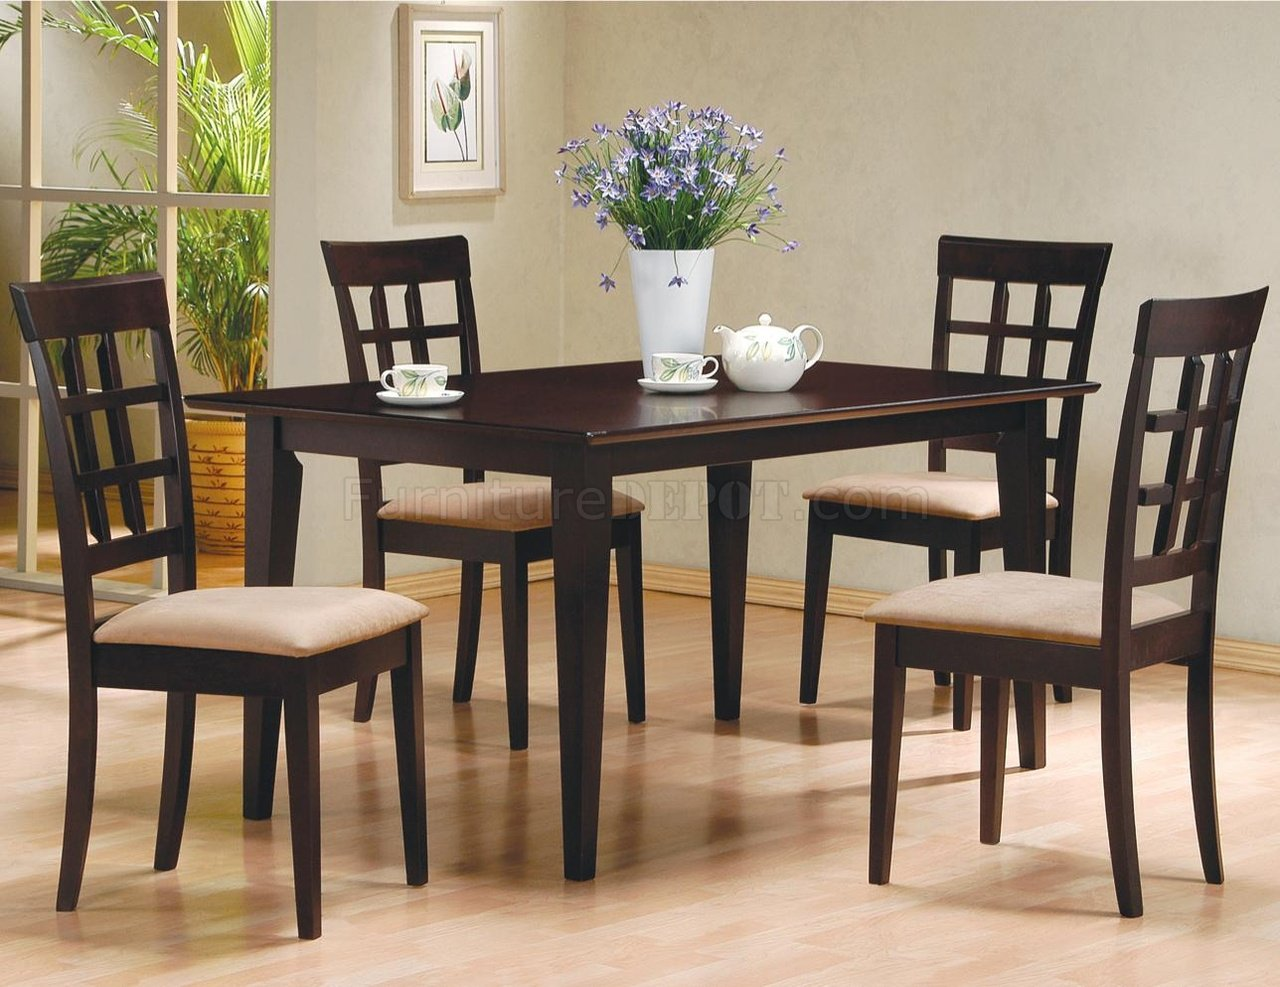 Cappuccino finish 5pc modern dinette set w microfiber seats for Dining chair ideas